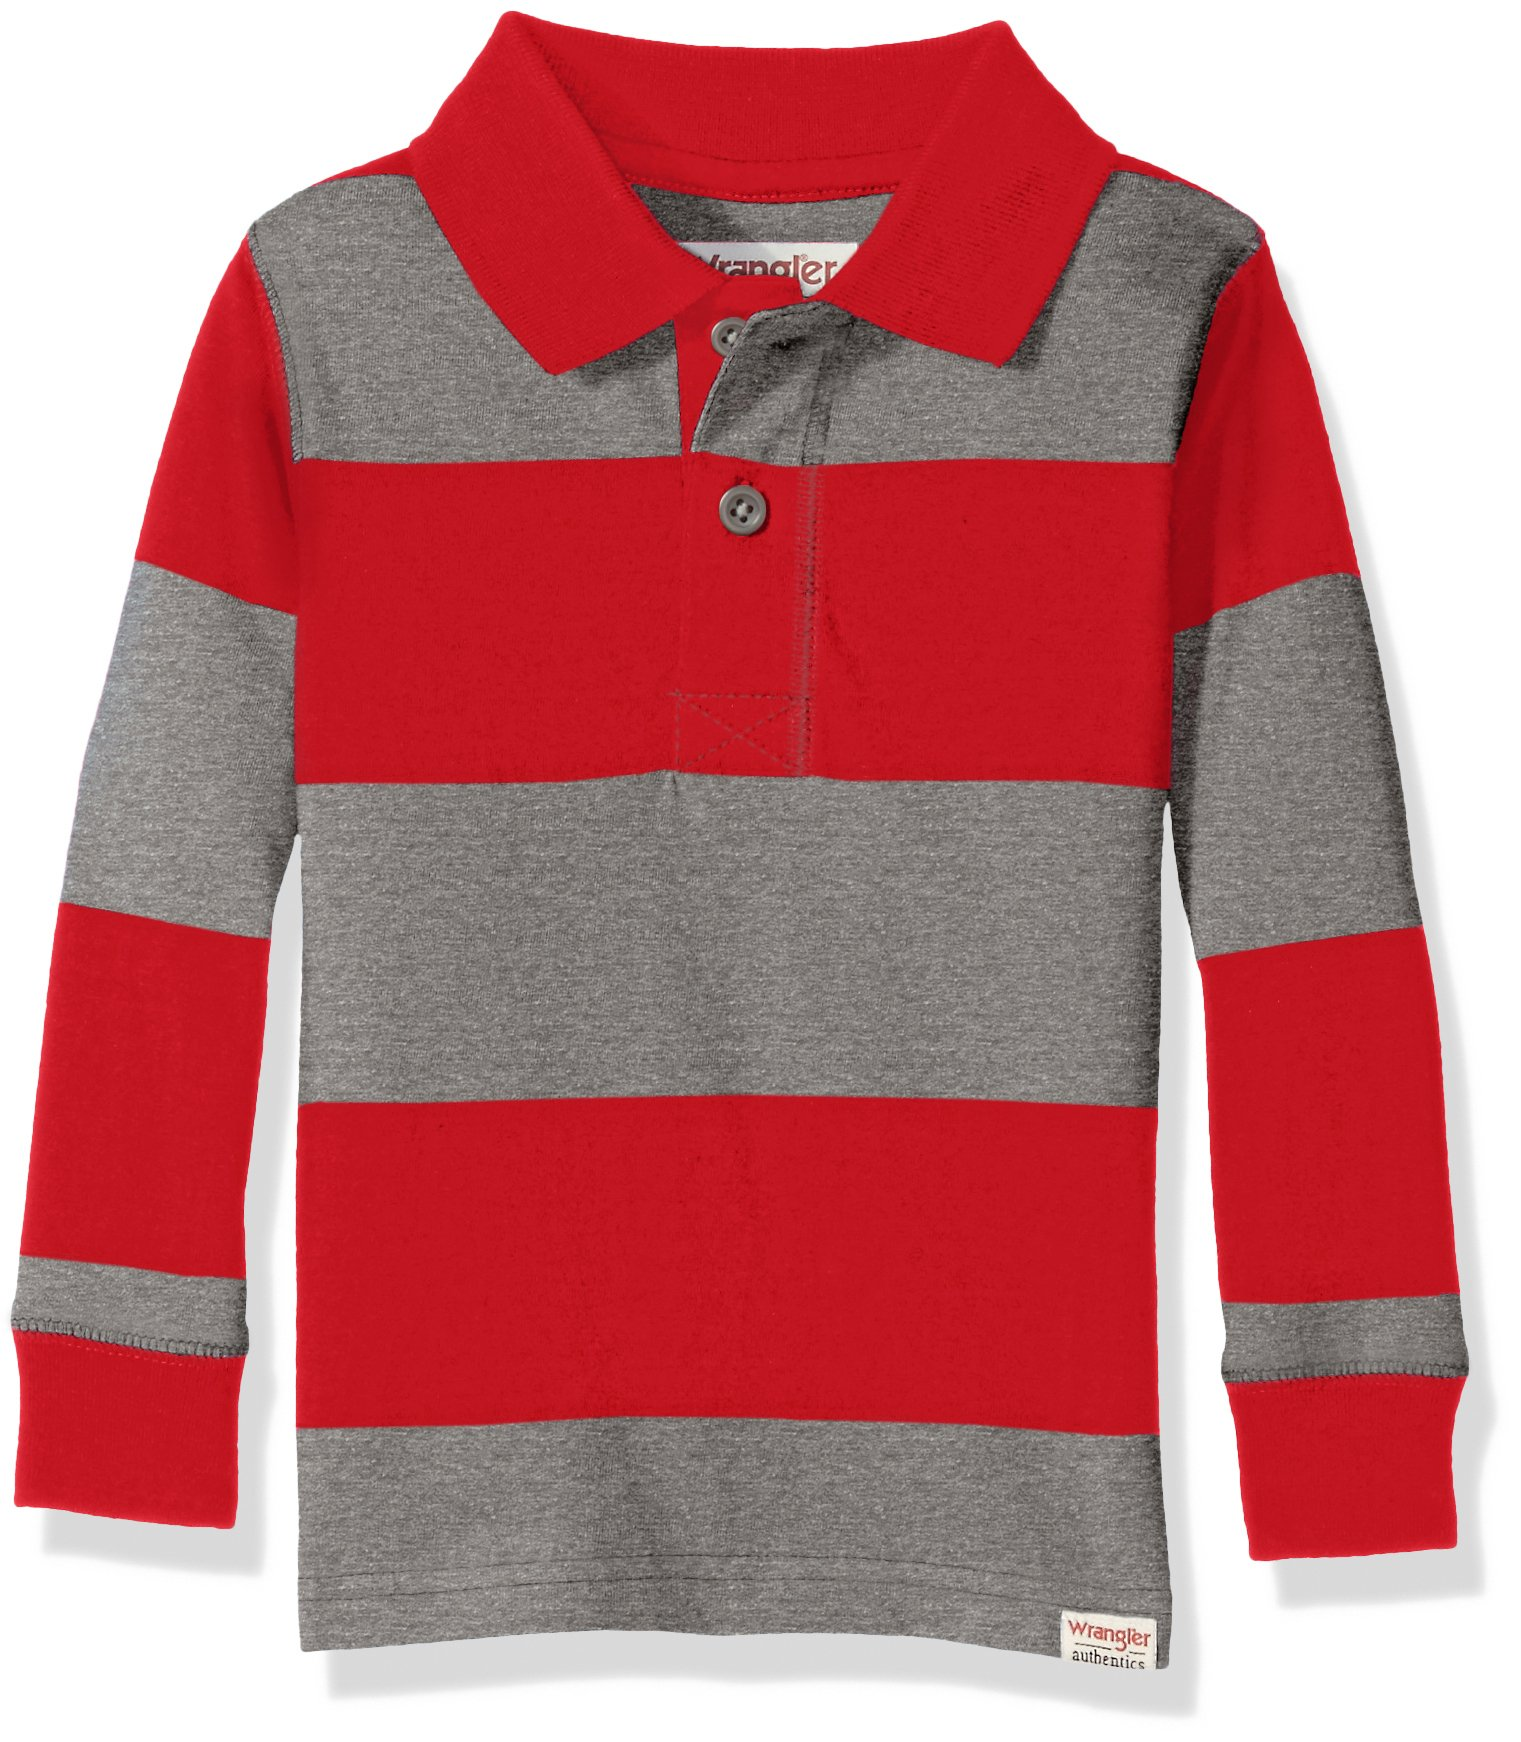 Wrangler Authentics Infant & Toddler Baby Boys Long Sleeve Knit